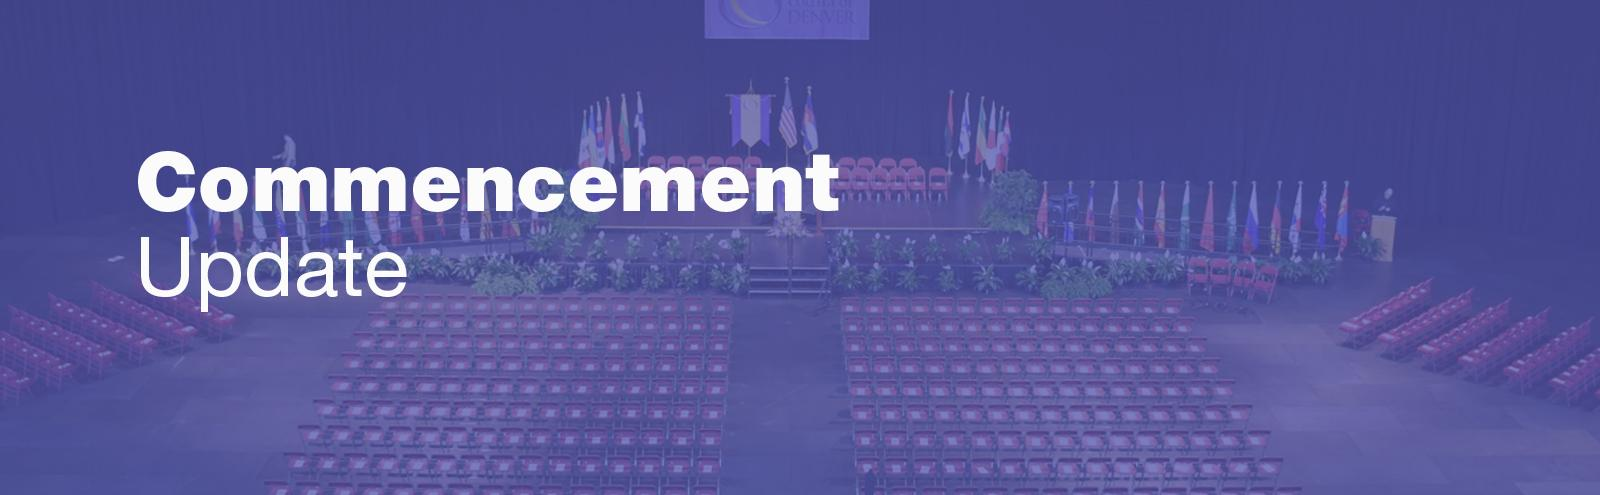 empty commencement stage and seating